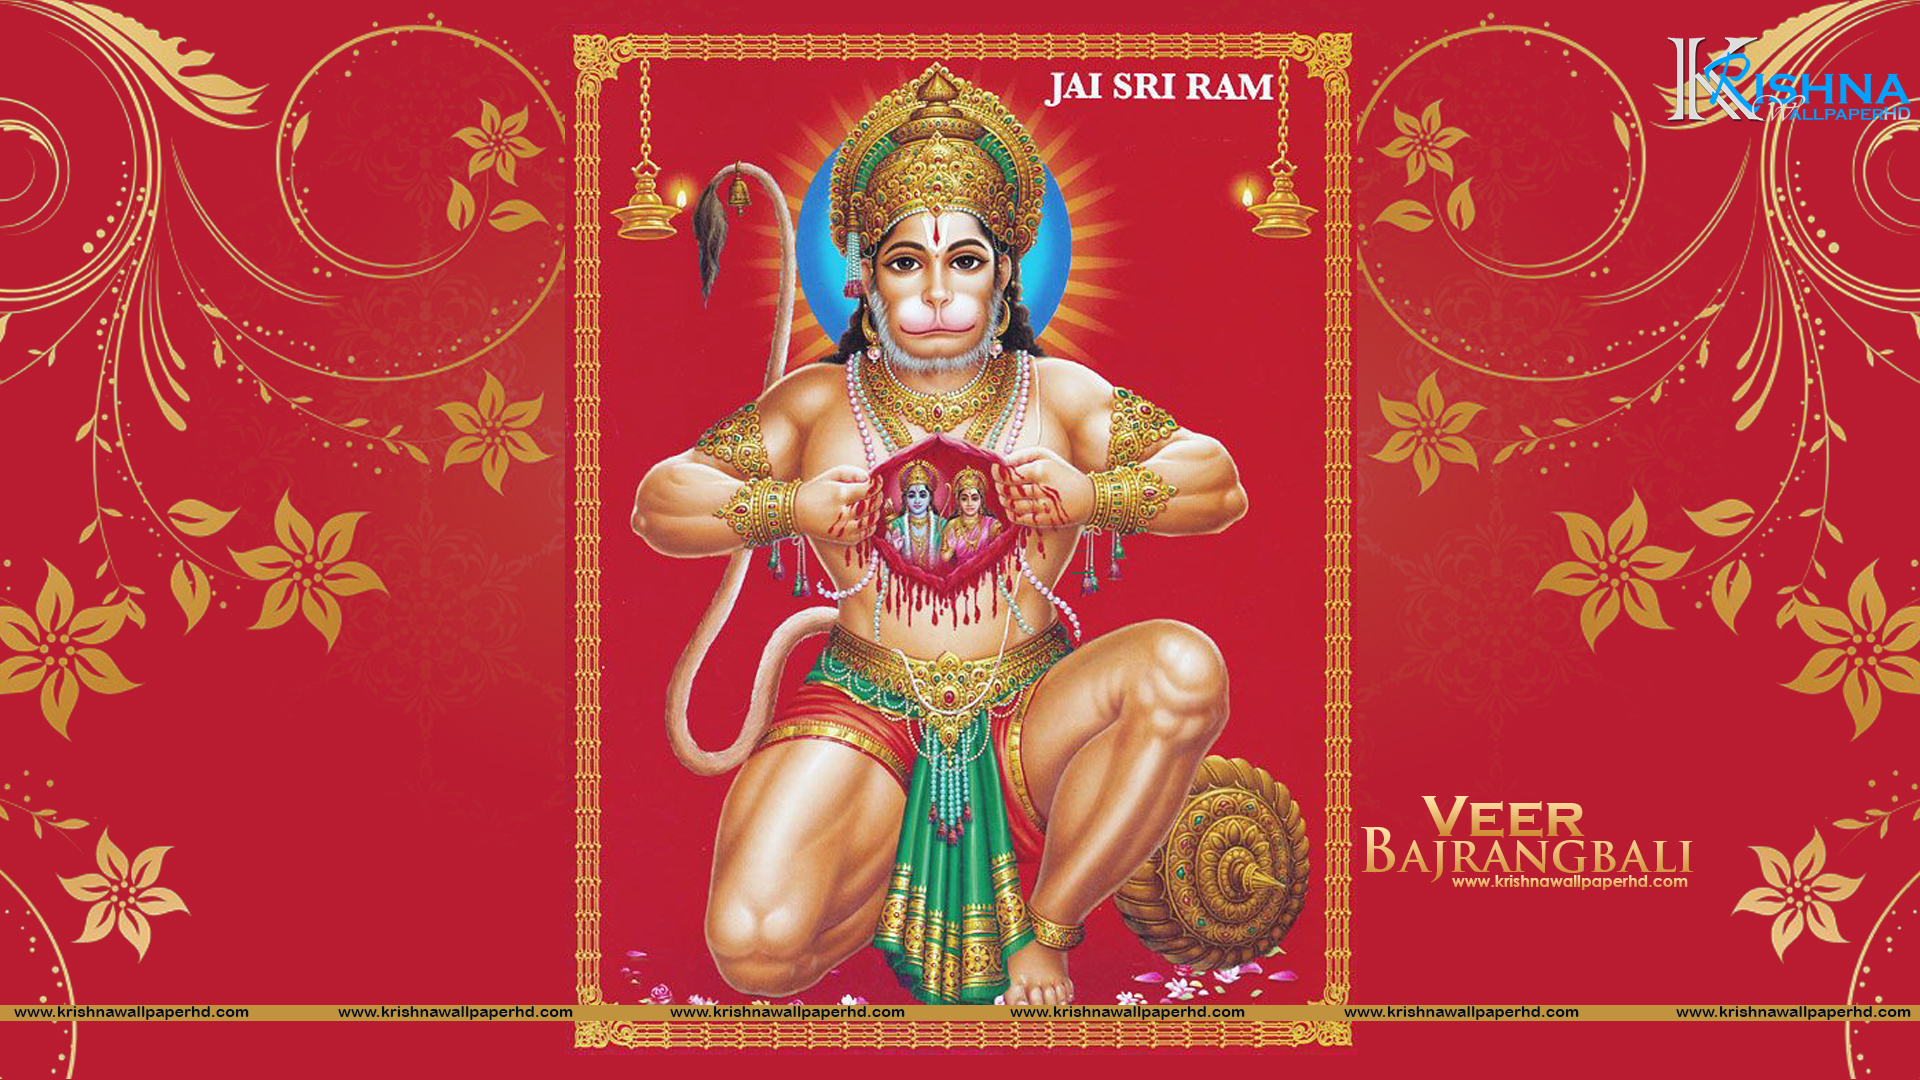 Full HD Size Wallpaper of Veer Bajrangbali Free Download